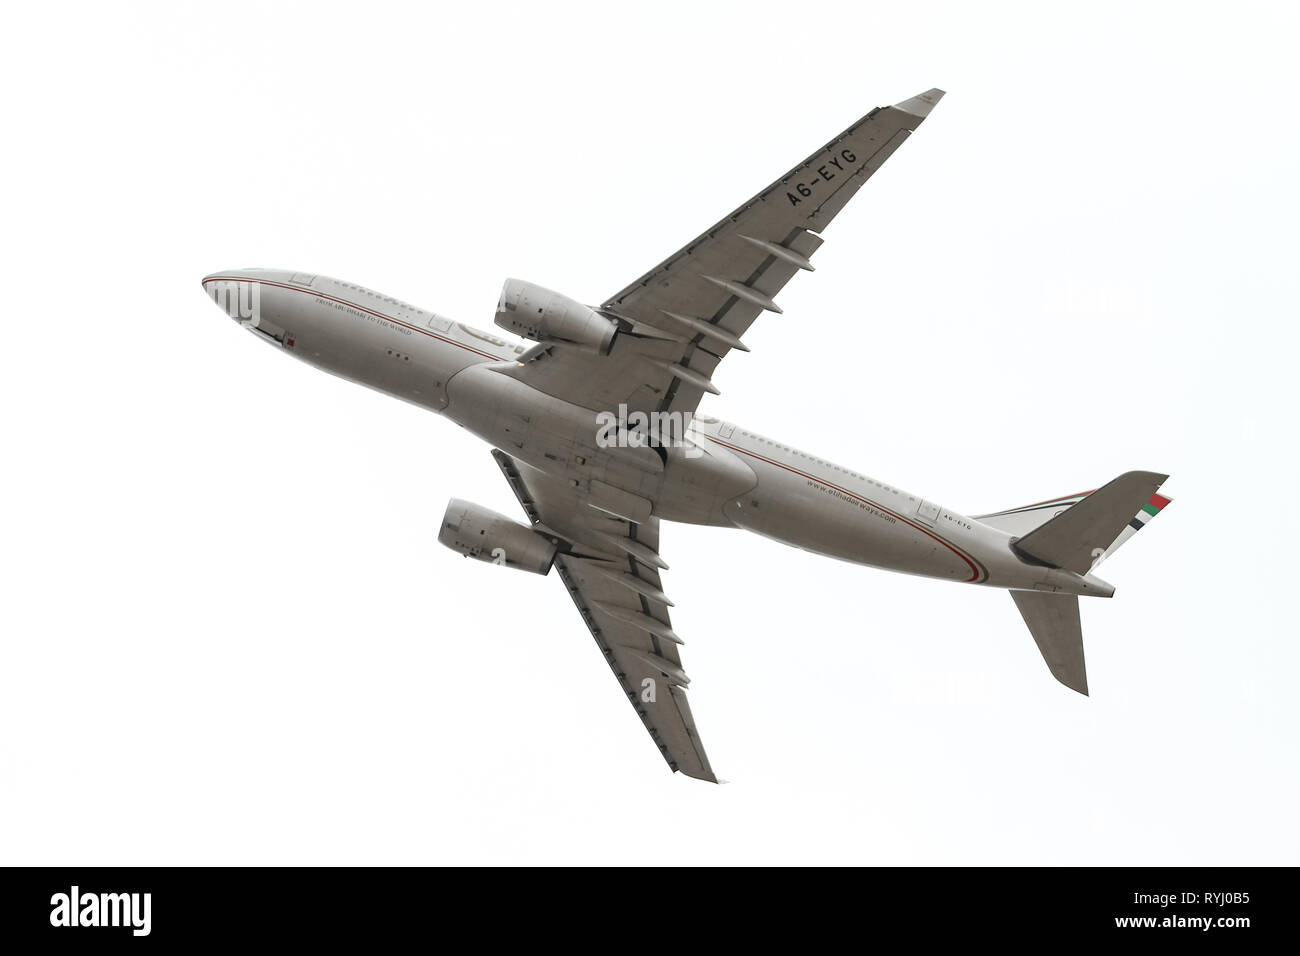 ISTANBUL, TURKEY - SEPTEMBER 30, 2018: Turkish Airlines Airbus A330-243 (CN 724) takes off from Istanbul Ataturk Airport. THY is the flag carrier of T - Stock Image